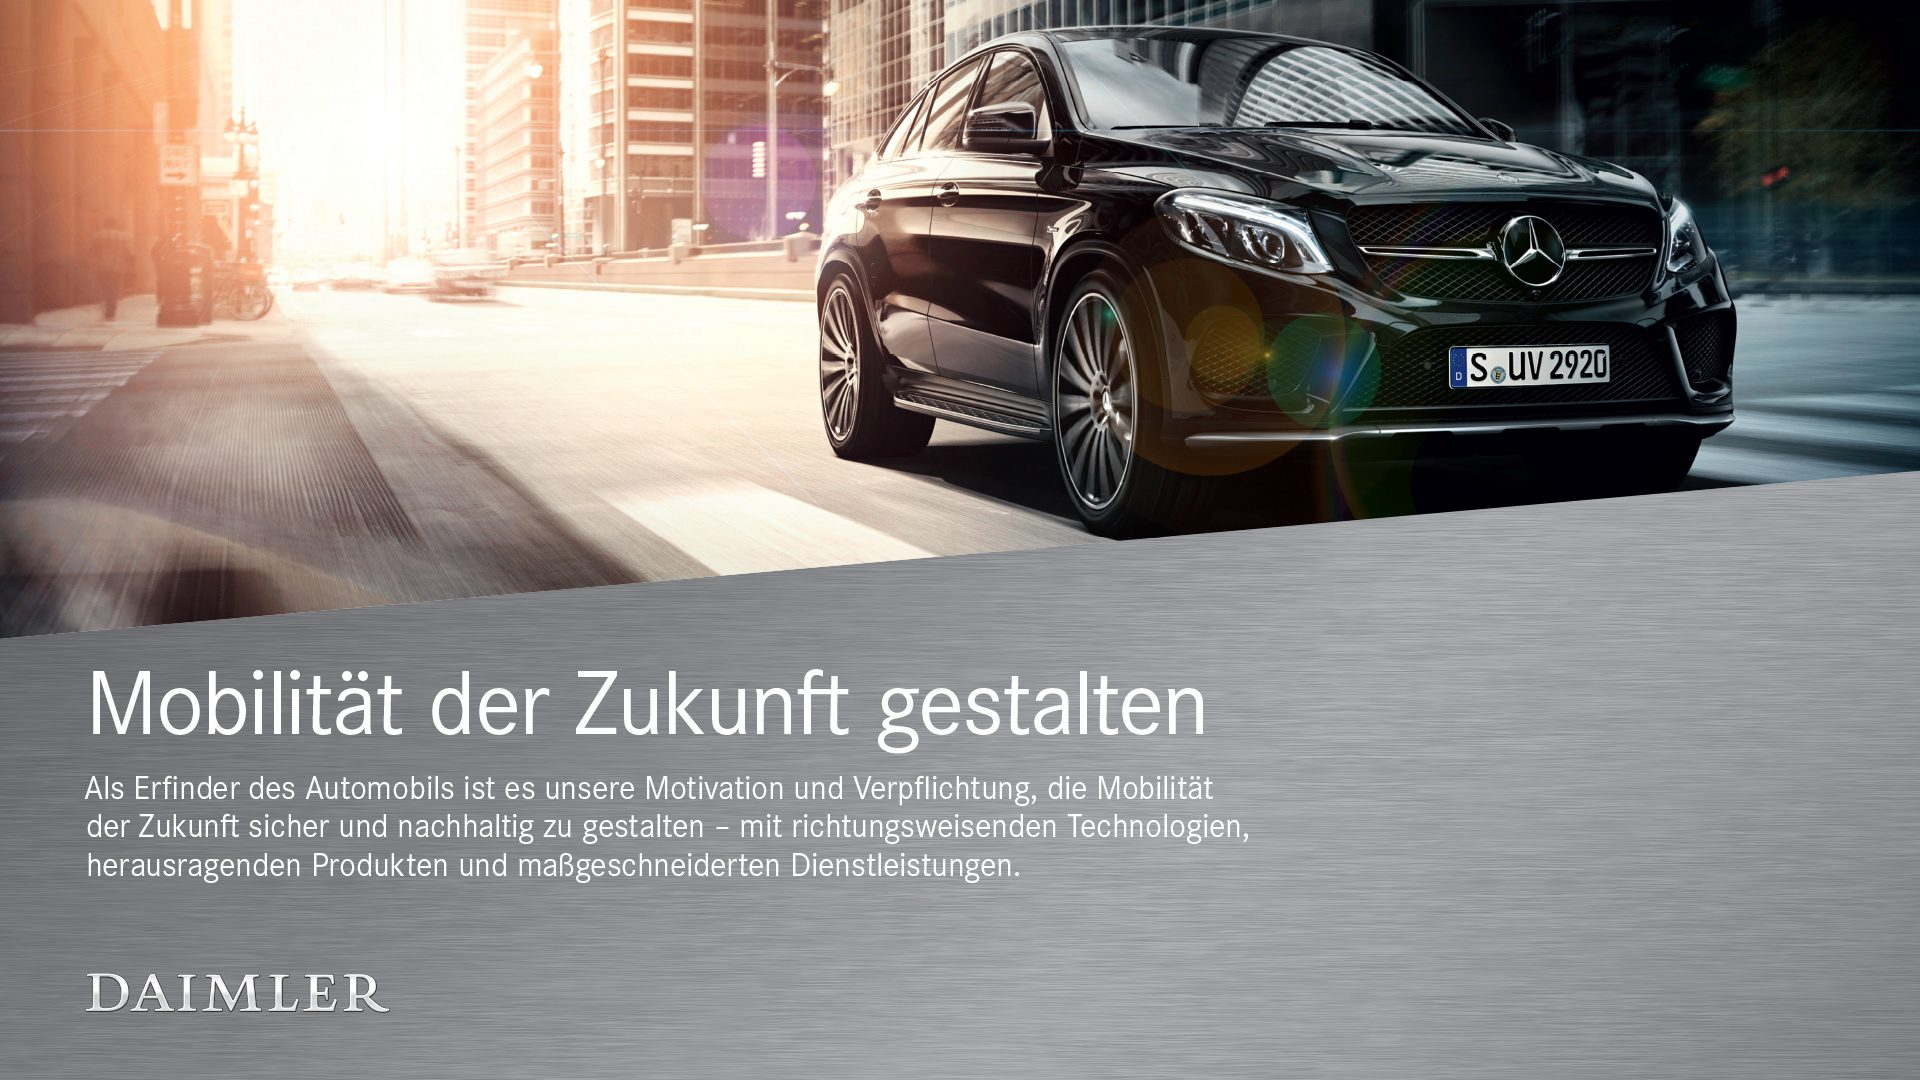 Daimler Corporate Design Werbung